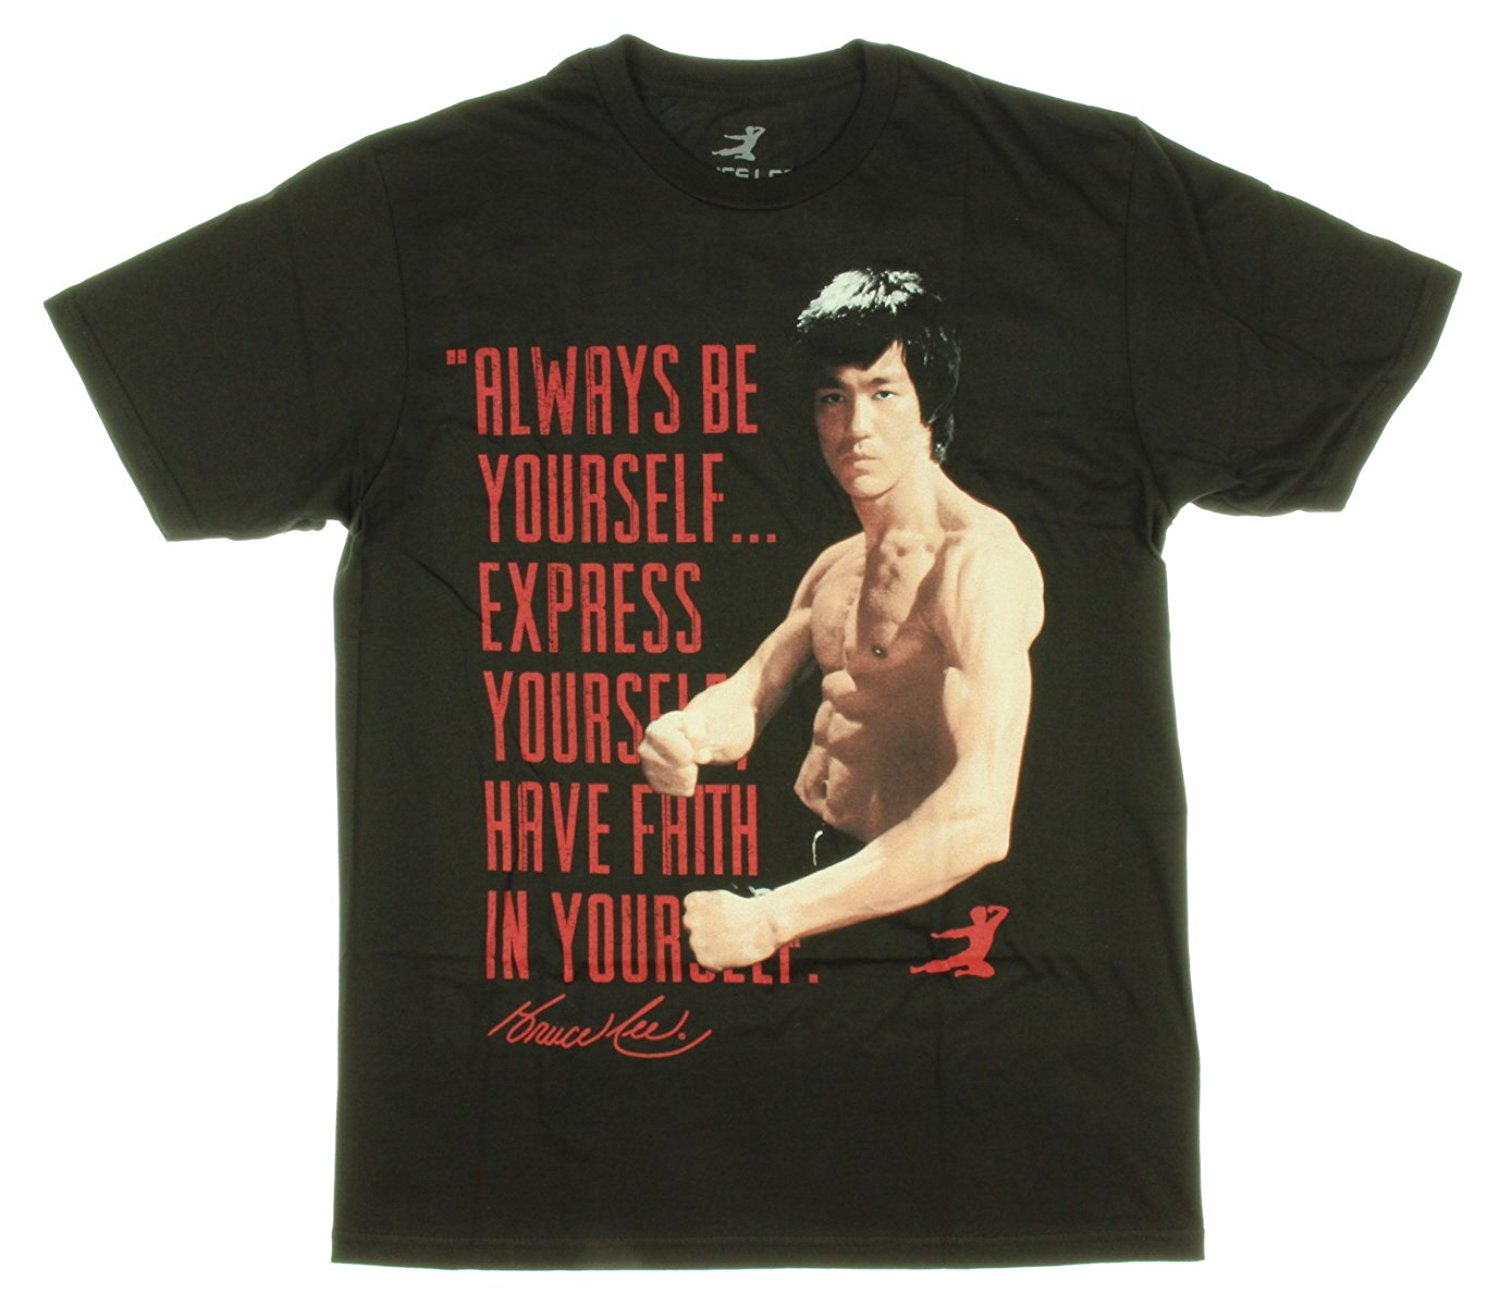 Rude Top Tee Round Neck Bruce Lee Always be yourself express Mens Black T-shirts Stranger Things Print T-Shirts Original